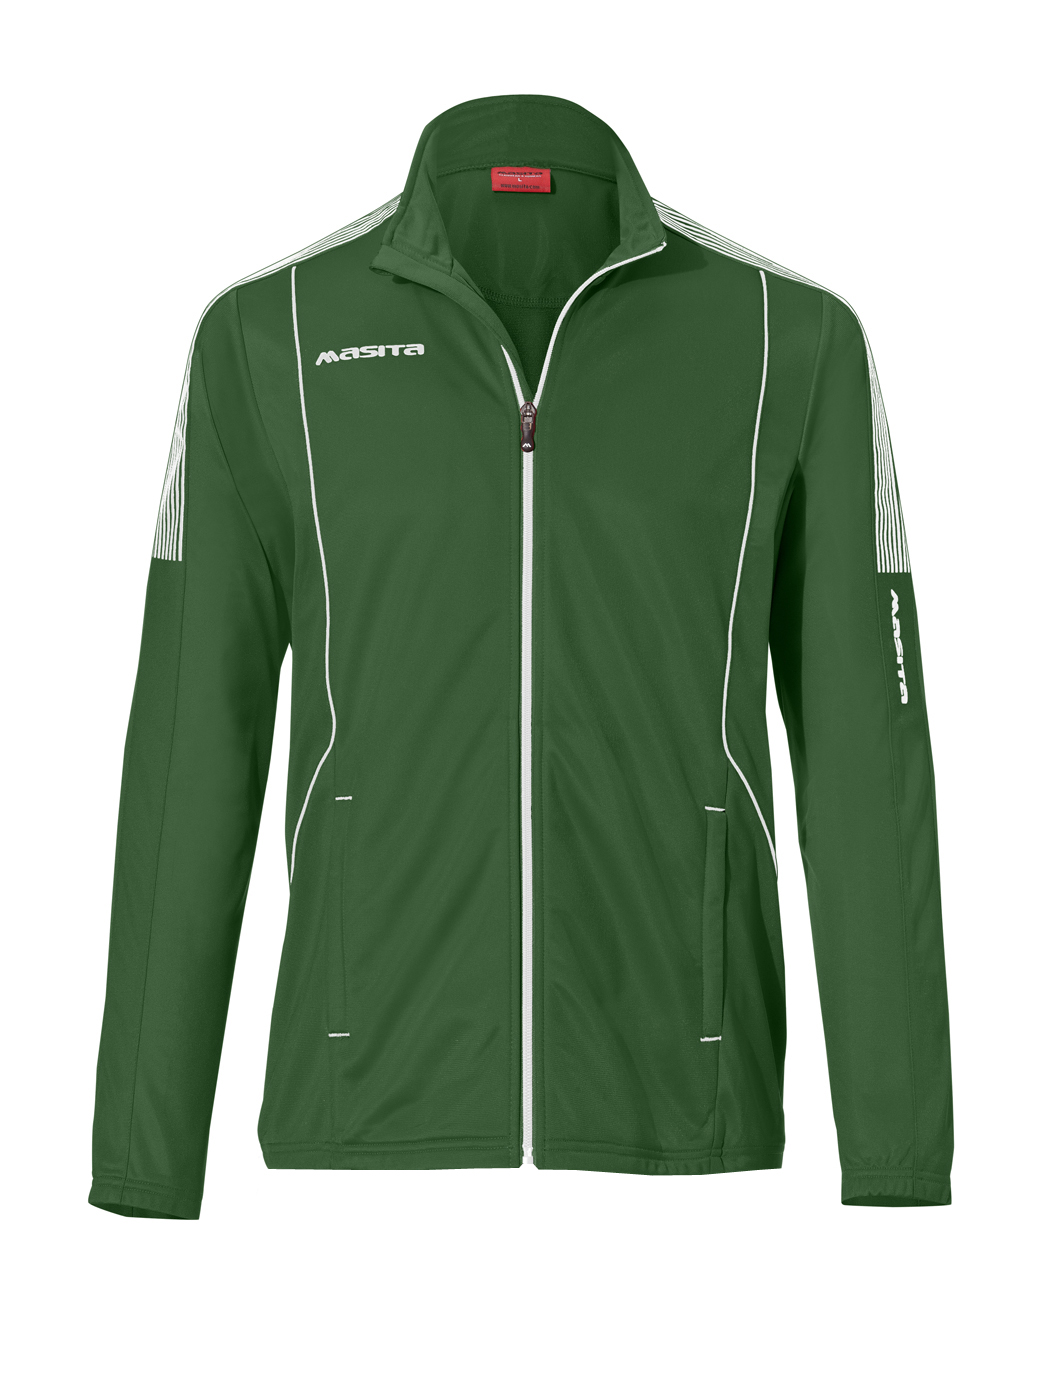 Polyester Jacket Barca  Green / White